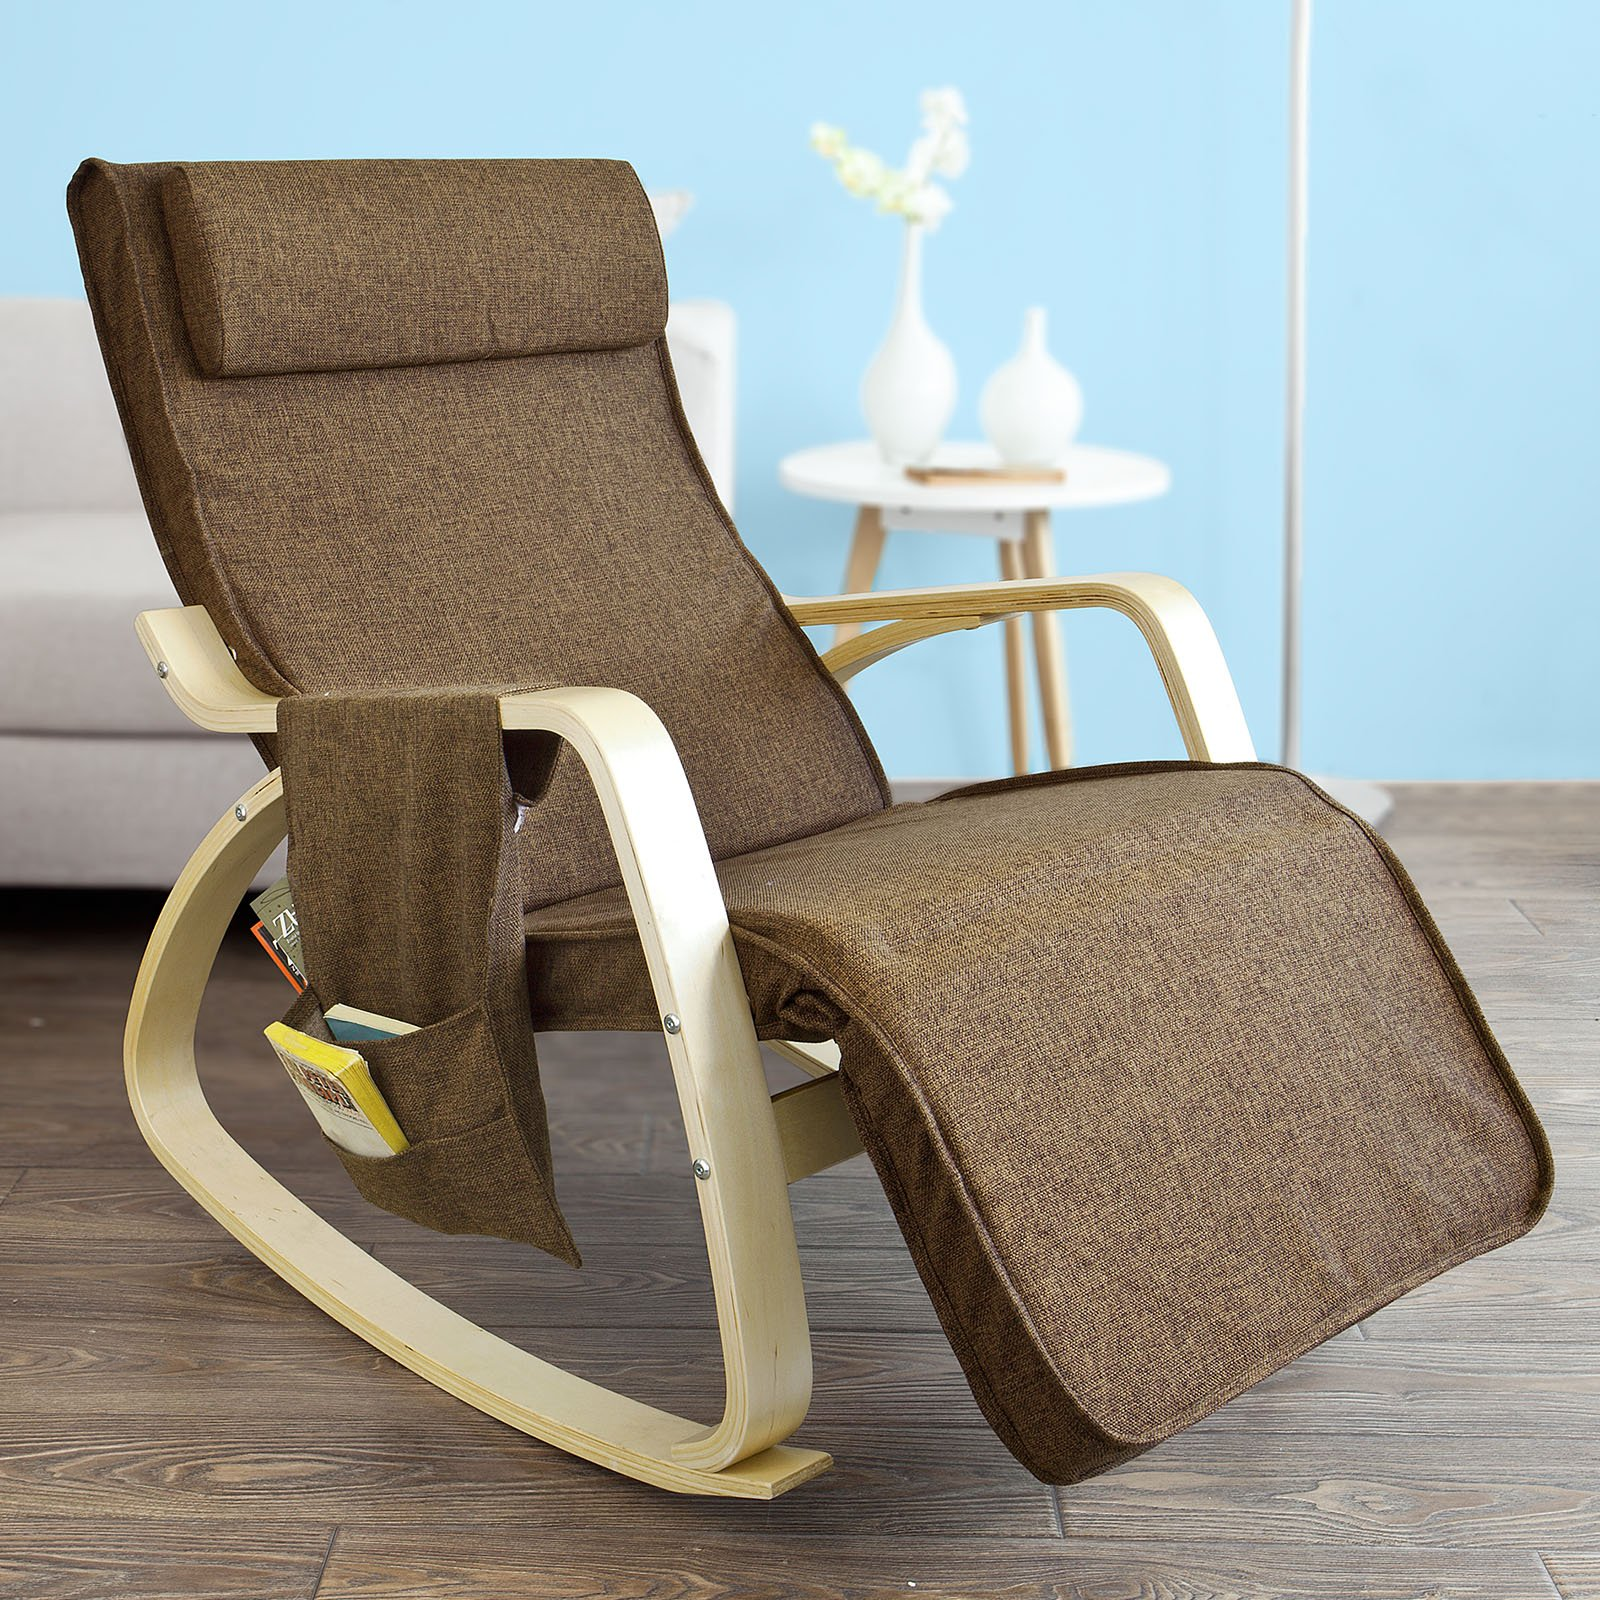 Haotian Comfortable Relax Rocking Chair, Gliders,Lounge Chair Recliners with Adjustable Footrest & Side Pocket,FST18 (FST18-BR)